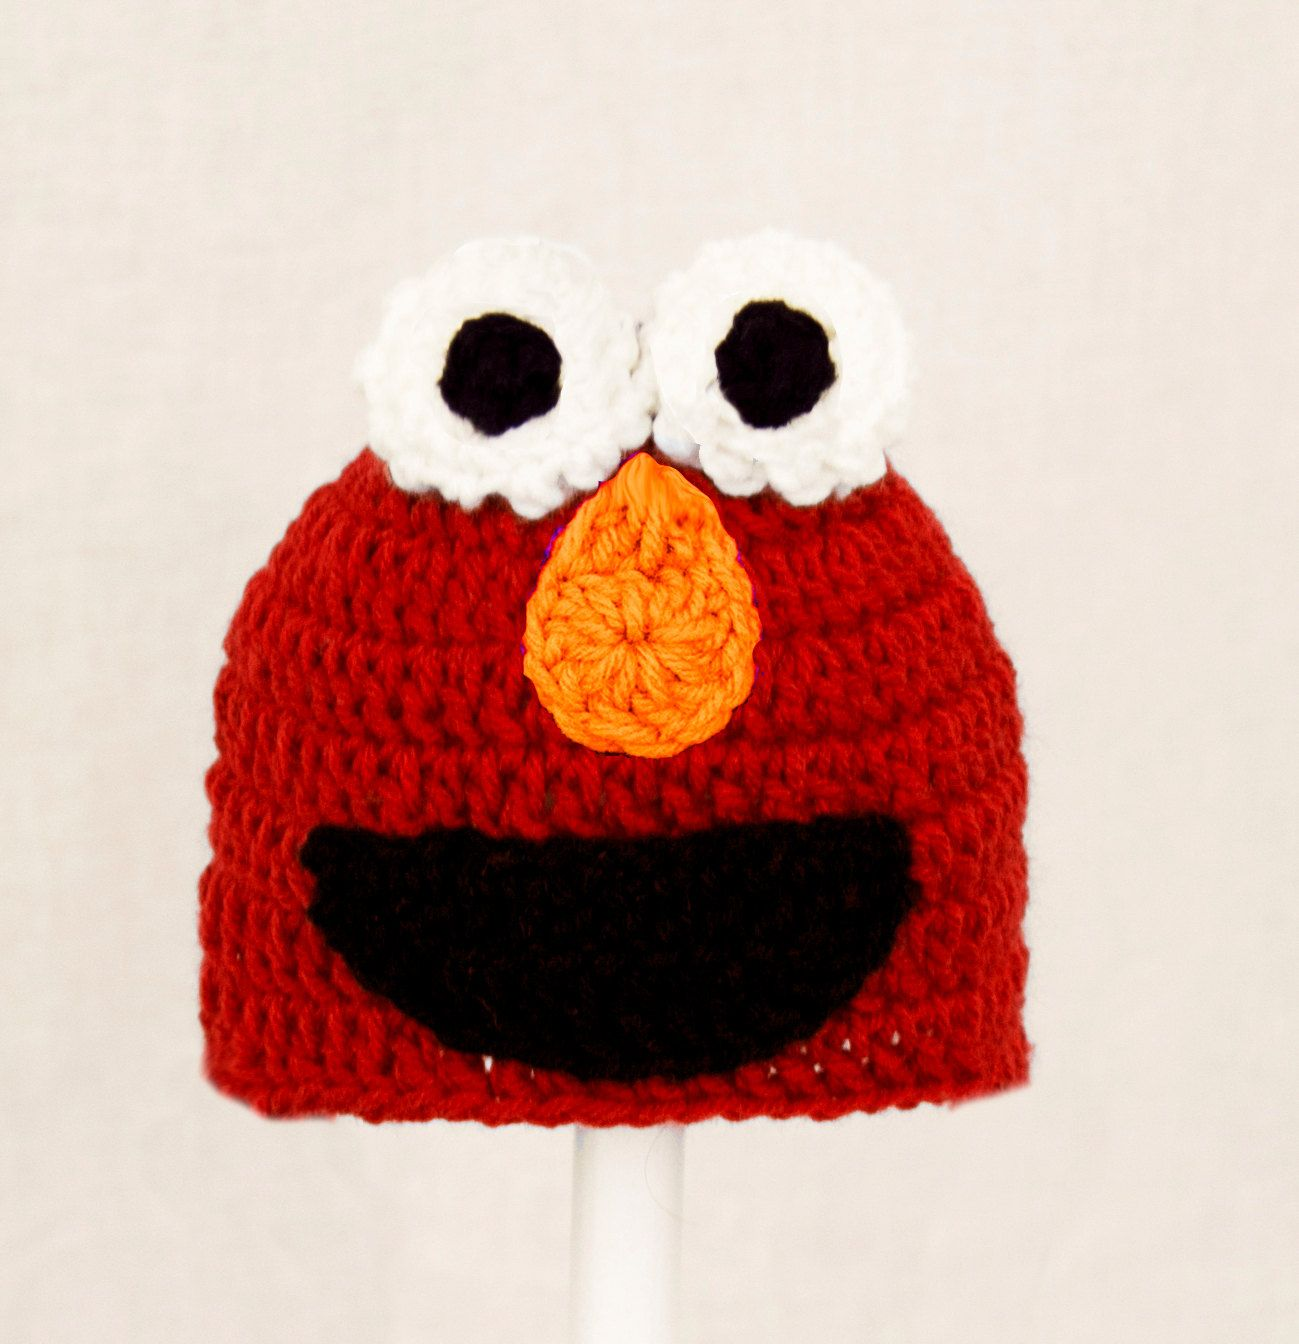 Elmo monster hat from sesame street red crochet beanie send size elmo monster hat from sesame street red crochet beanie send size choice baby bankloansurffo Gallery